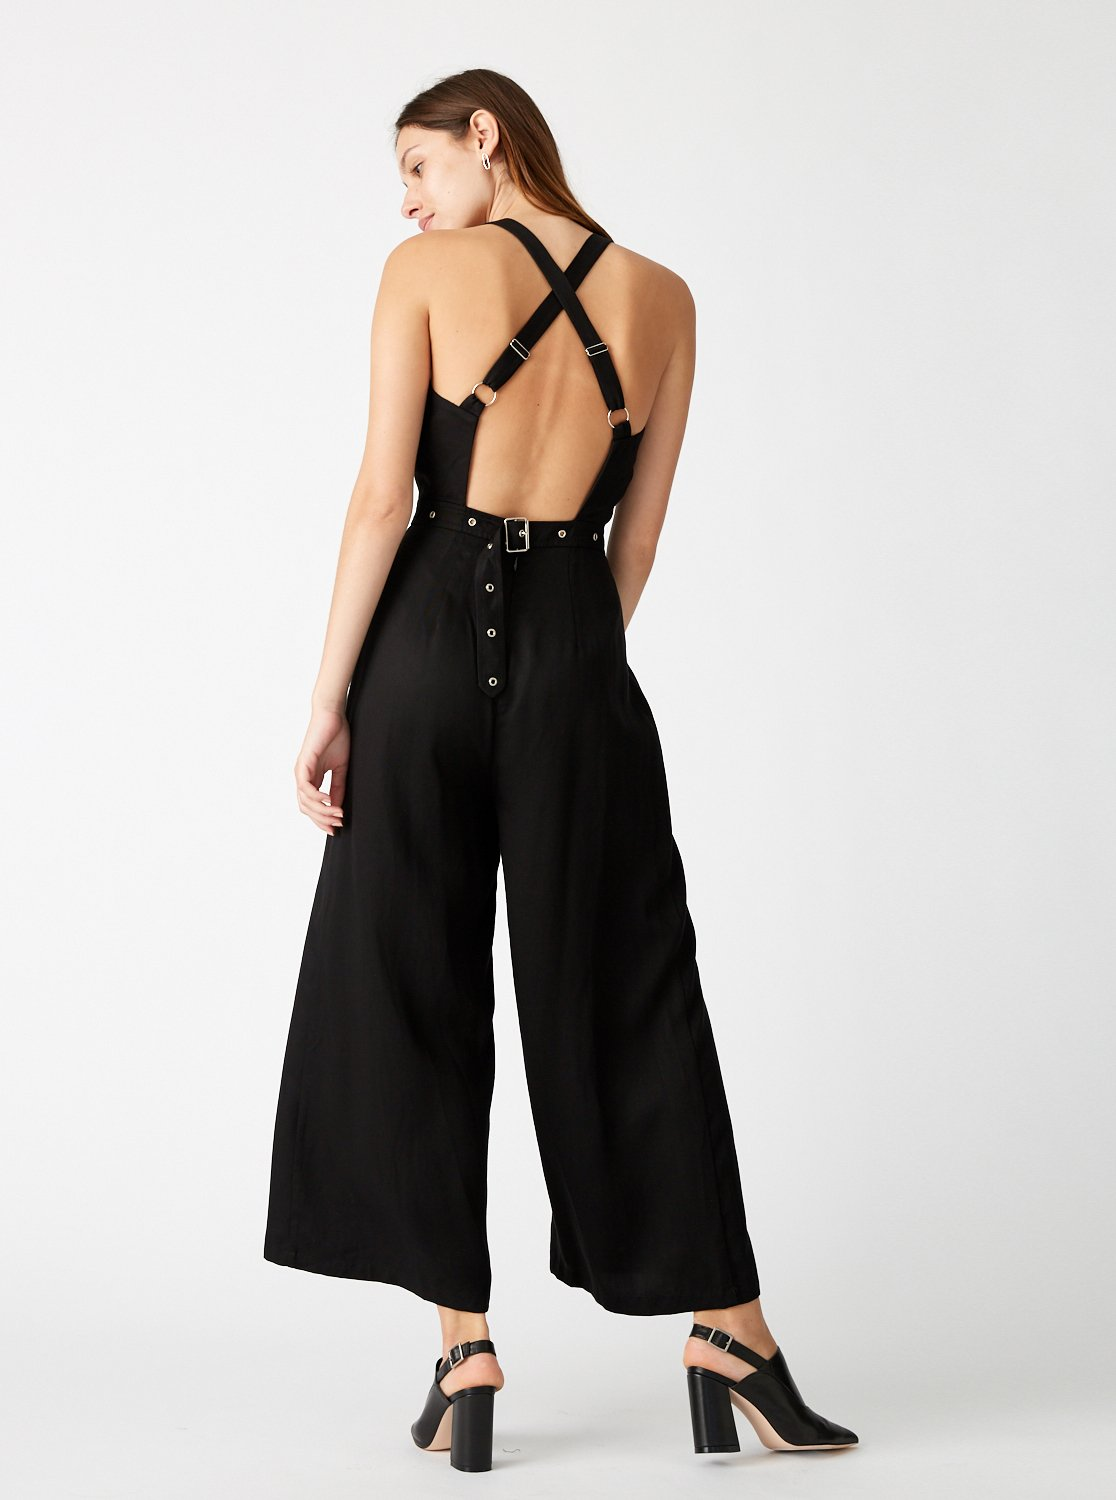 Sky High Jumpsuit Third Form - PROJECT TYME